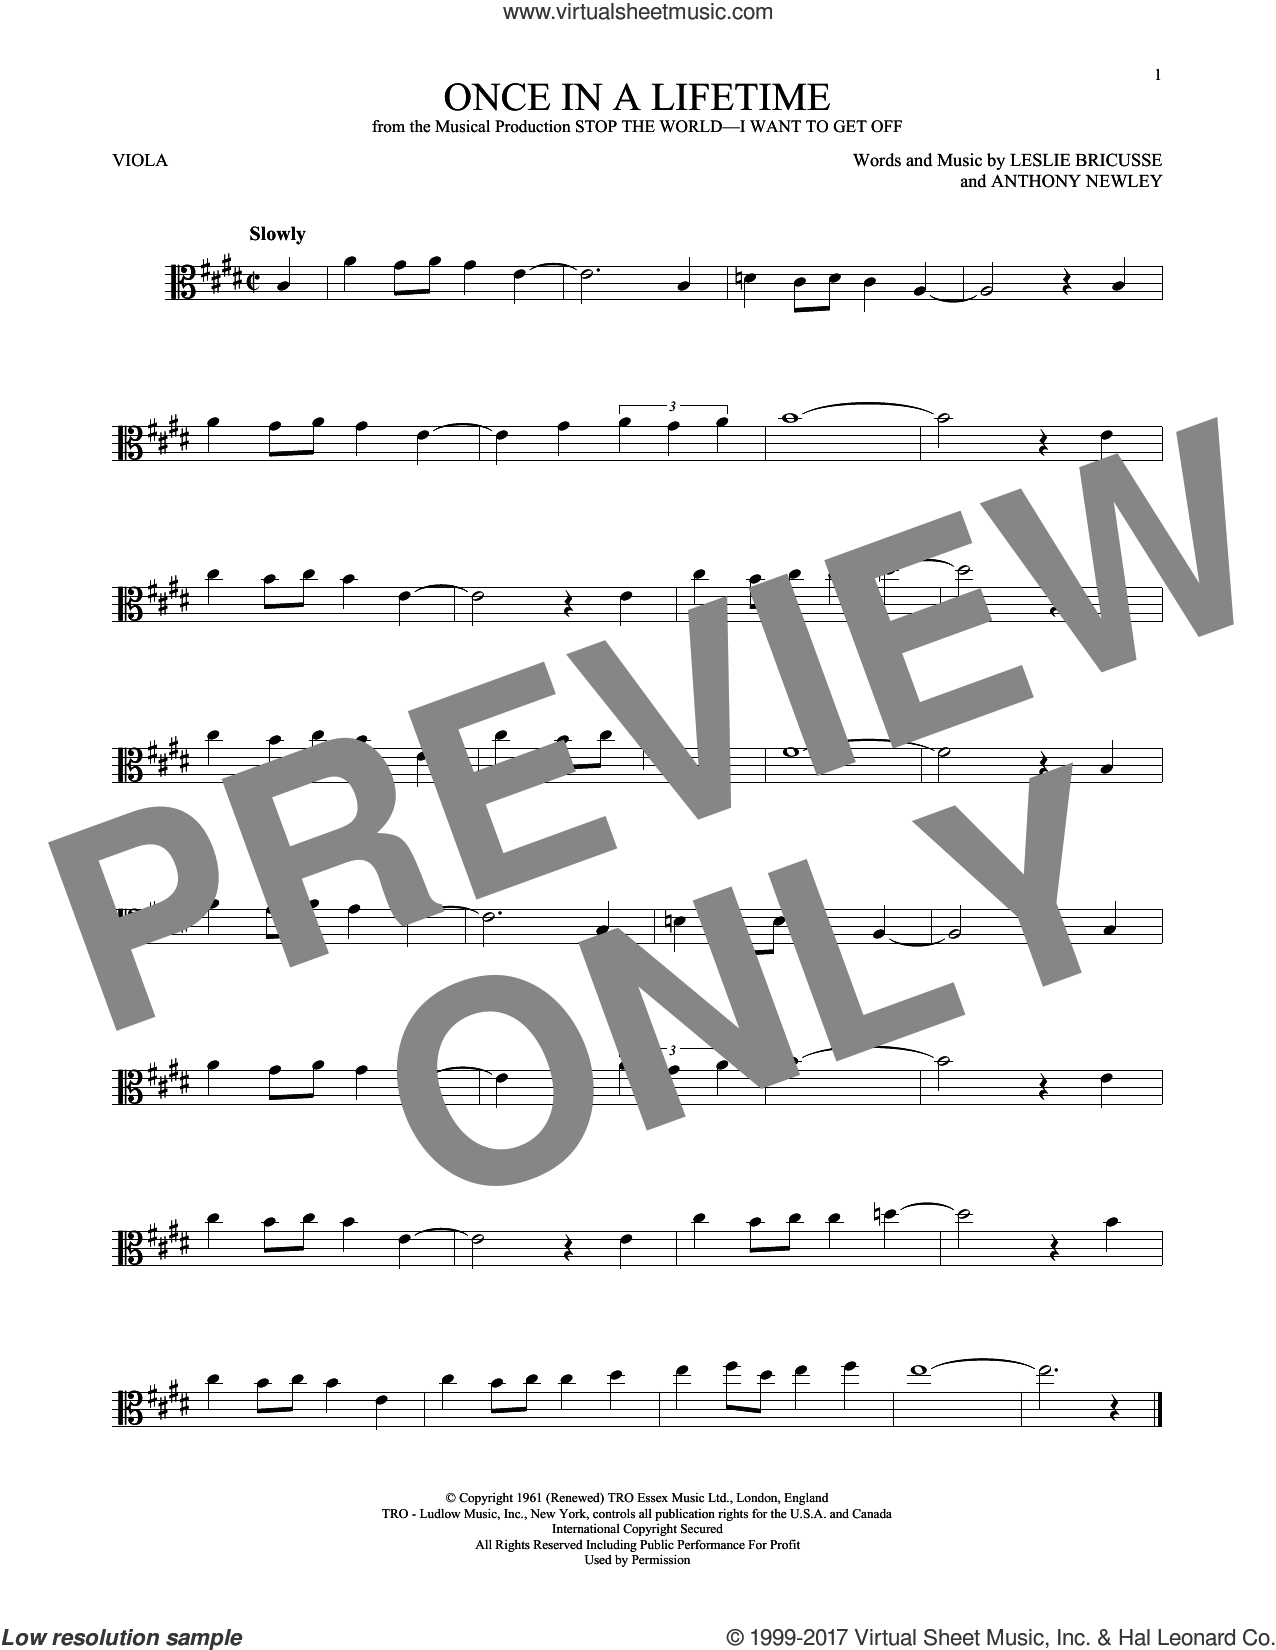 Once In A Lifetime sheet music for viola solo by Leslie Bricusse and Anthony Newley, intermediate skill level